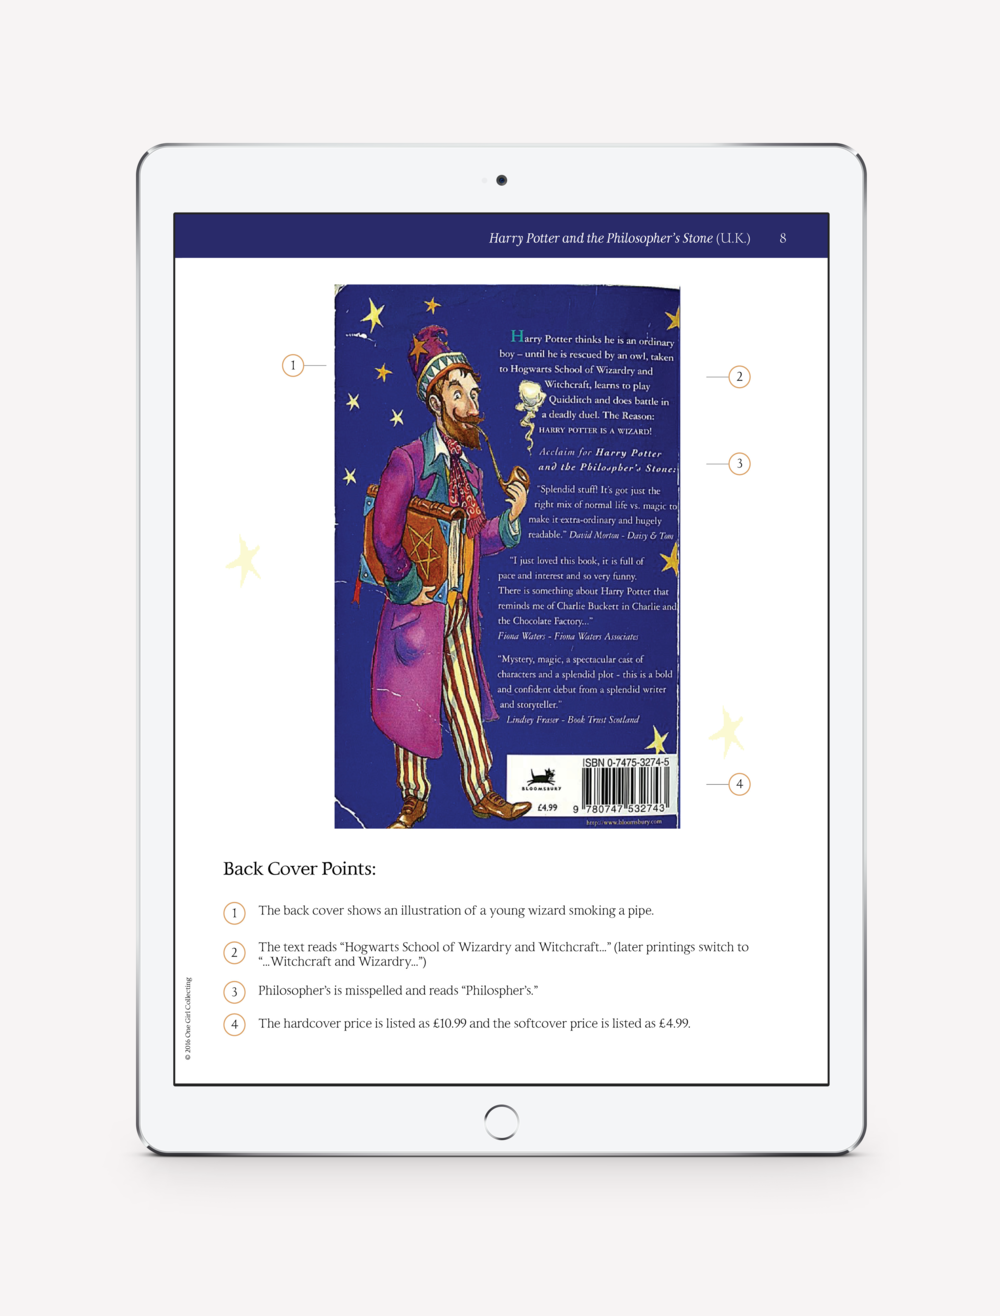 Ebook layout & design